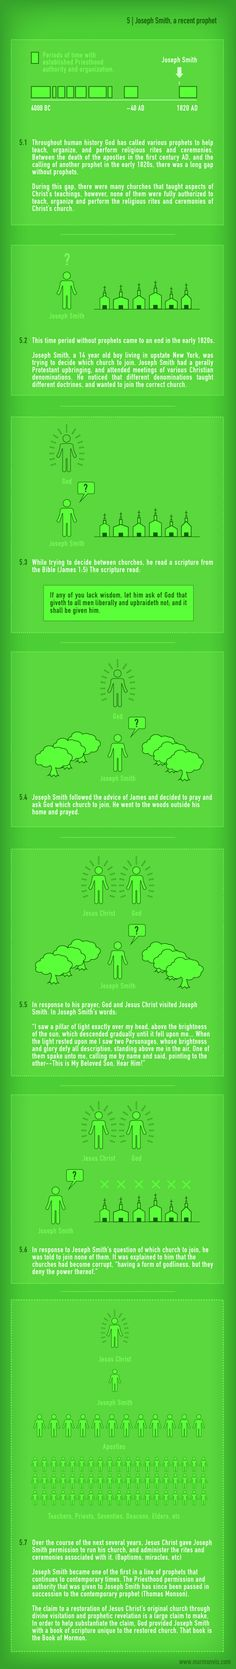 Joseph Smith. Part 5 of a series of basic explanations of Mormonism. (If you click the image it gets larger.)